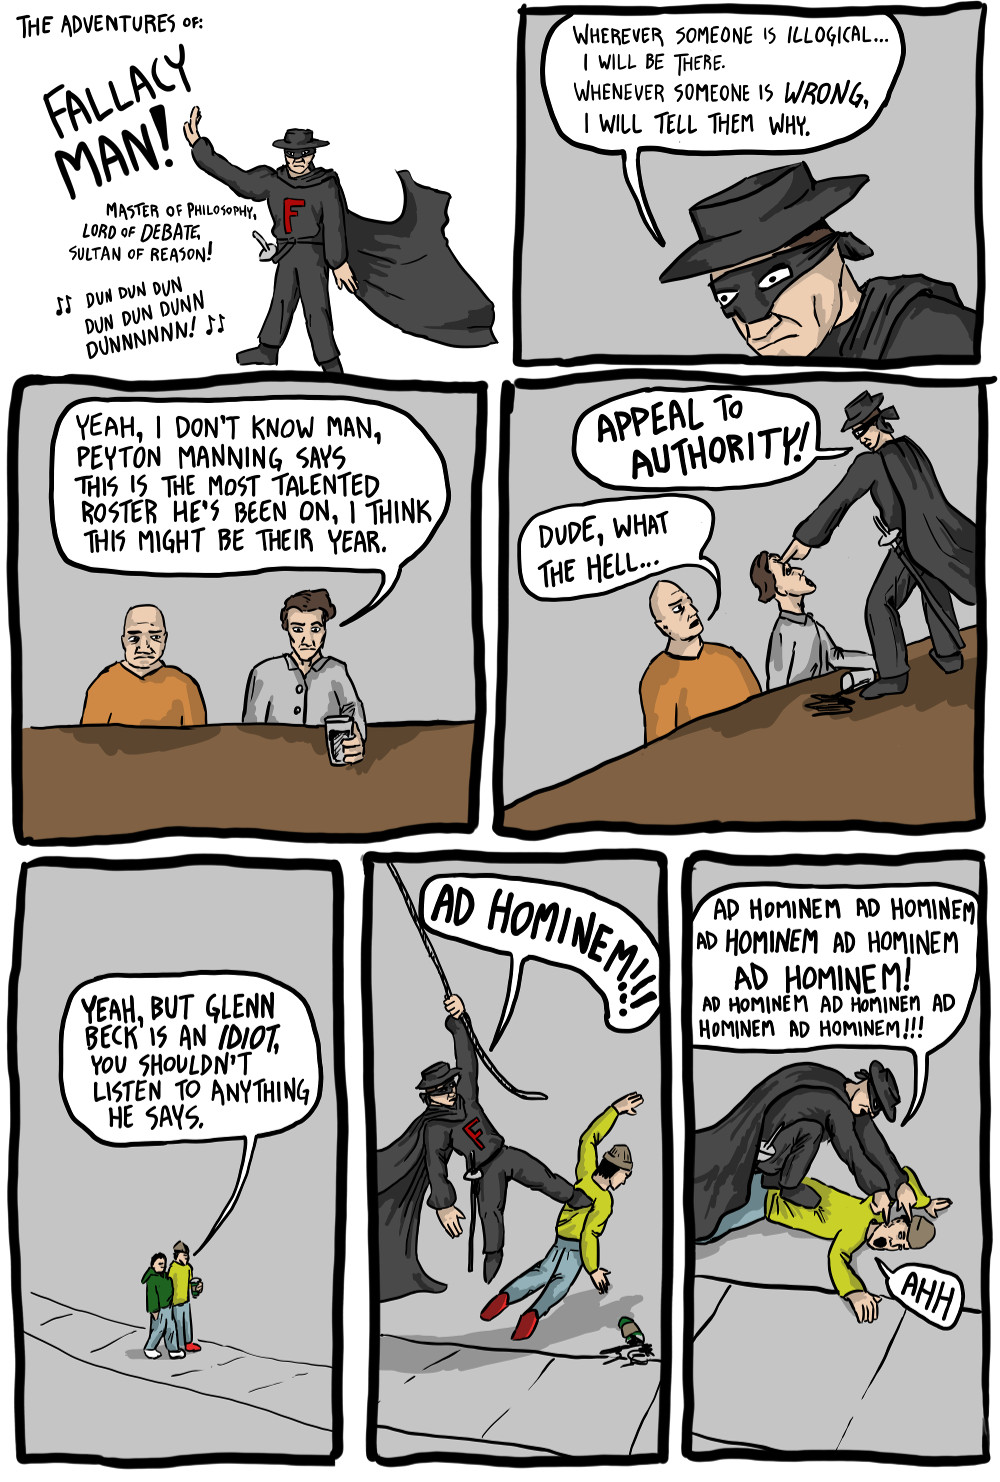 This Comic is Relevant to Every Internet Argument Ever